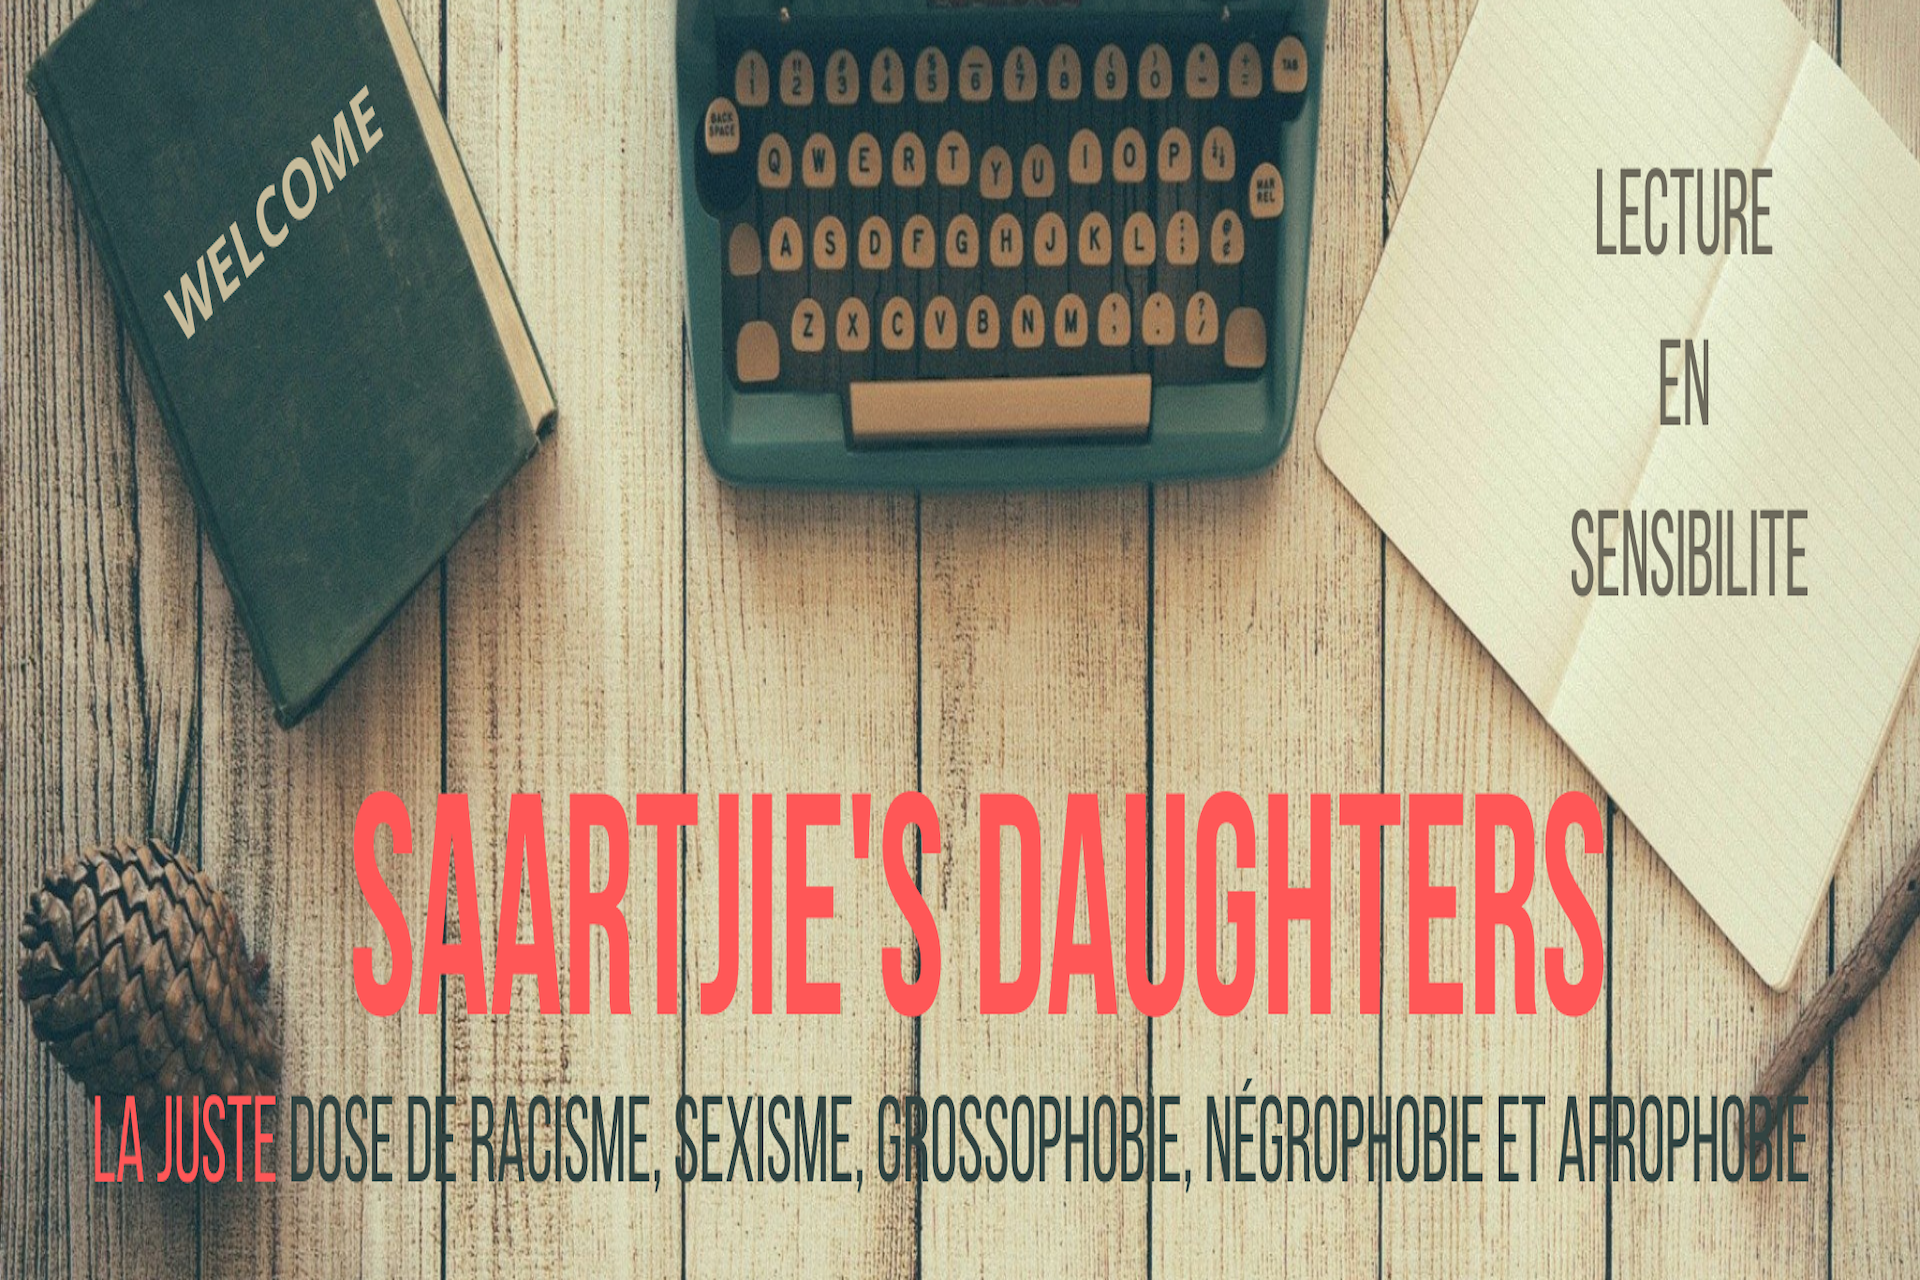 Saartjie's Daughters - Lecture en sensibilité - Cover - Dimensions site